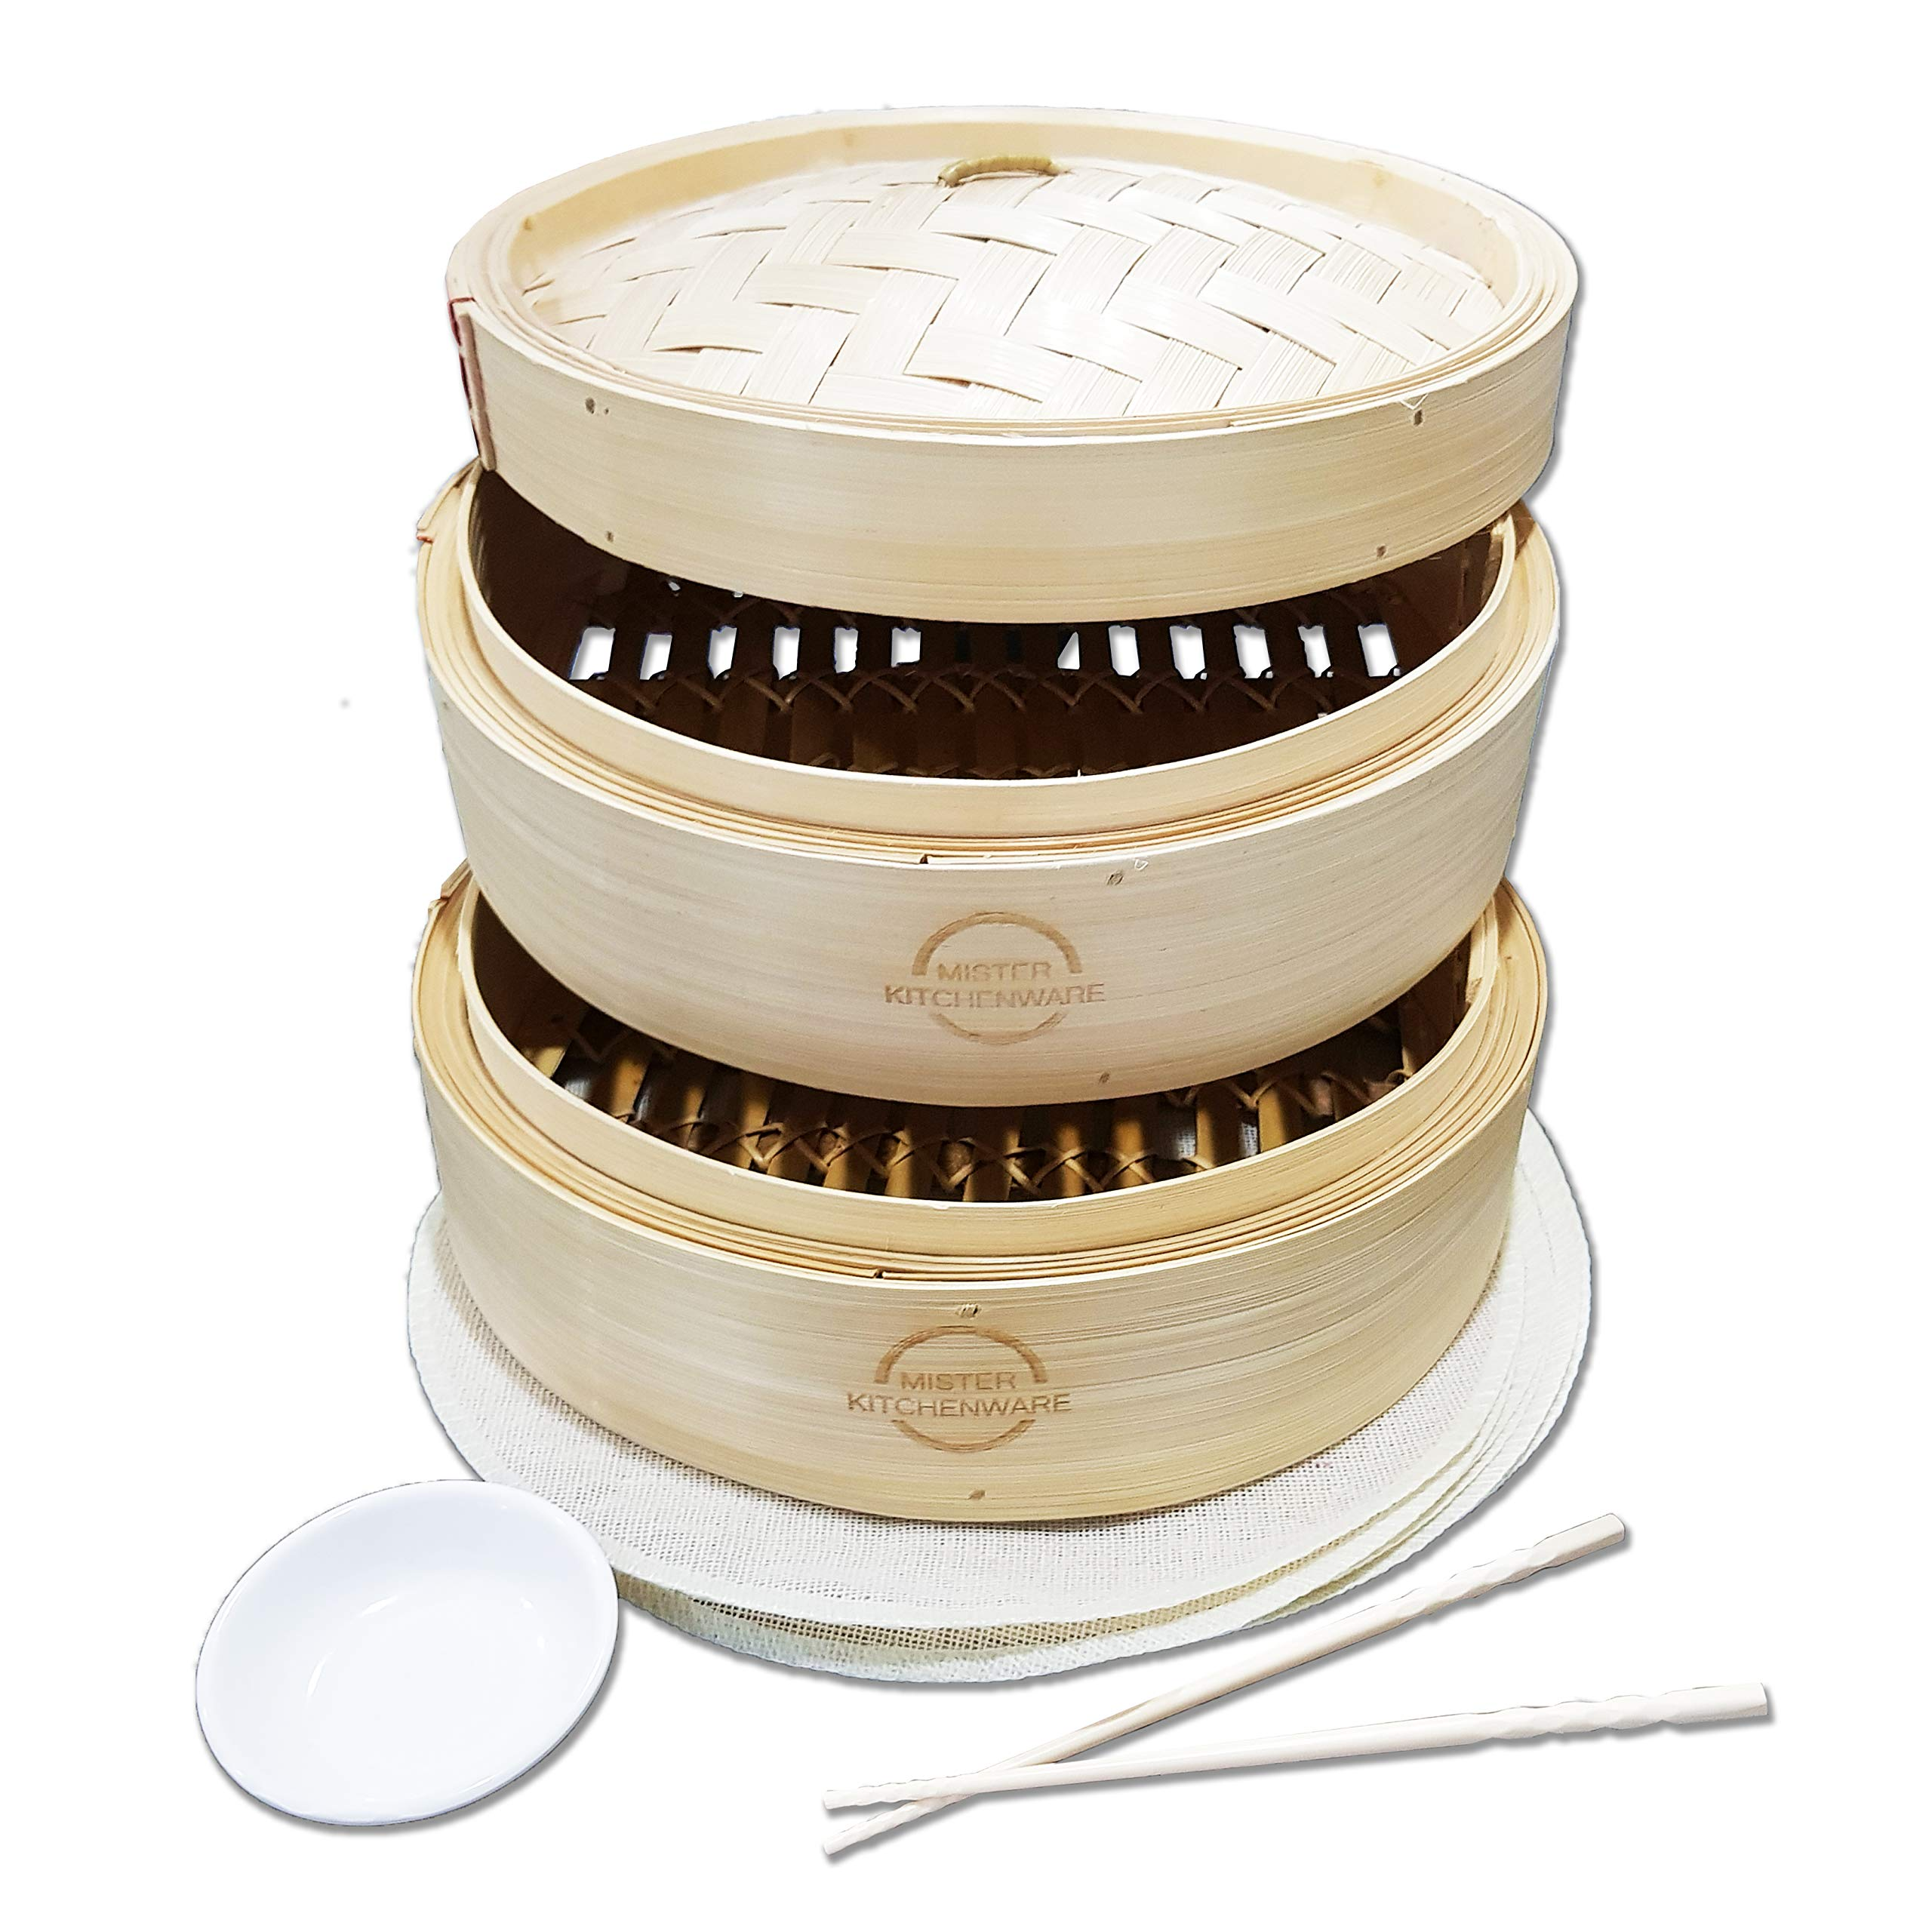 Mister Kitchenware 10 Inch Handmade Bamboo Steamer, 2 Tier Baskets, Healthy Cooking for Vegetables, Dim Sum Dumplings, Buns, Chicken Fish & Meat Included Chopsticks, 10 Liners & Sauce Dish by Mister Kitchenware